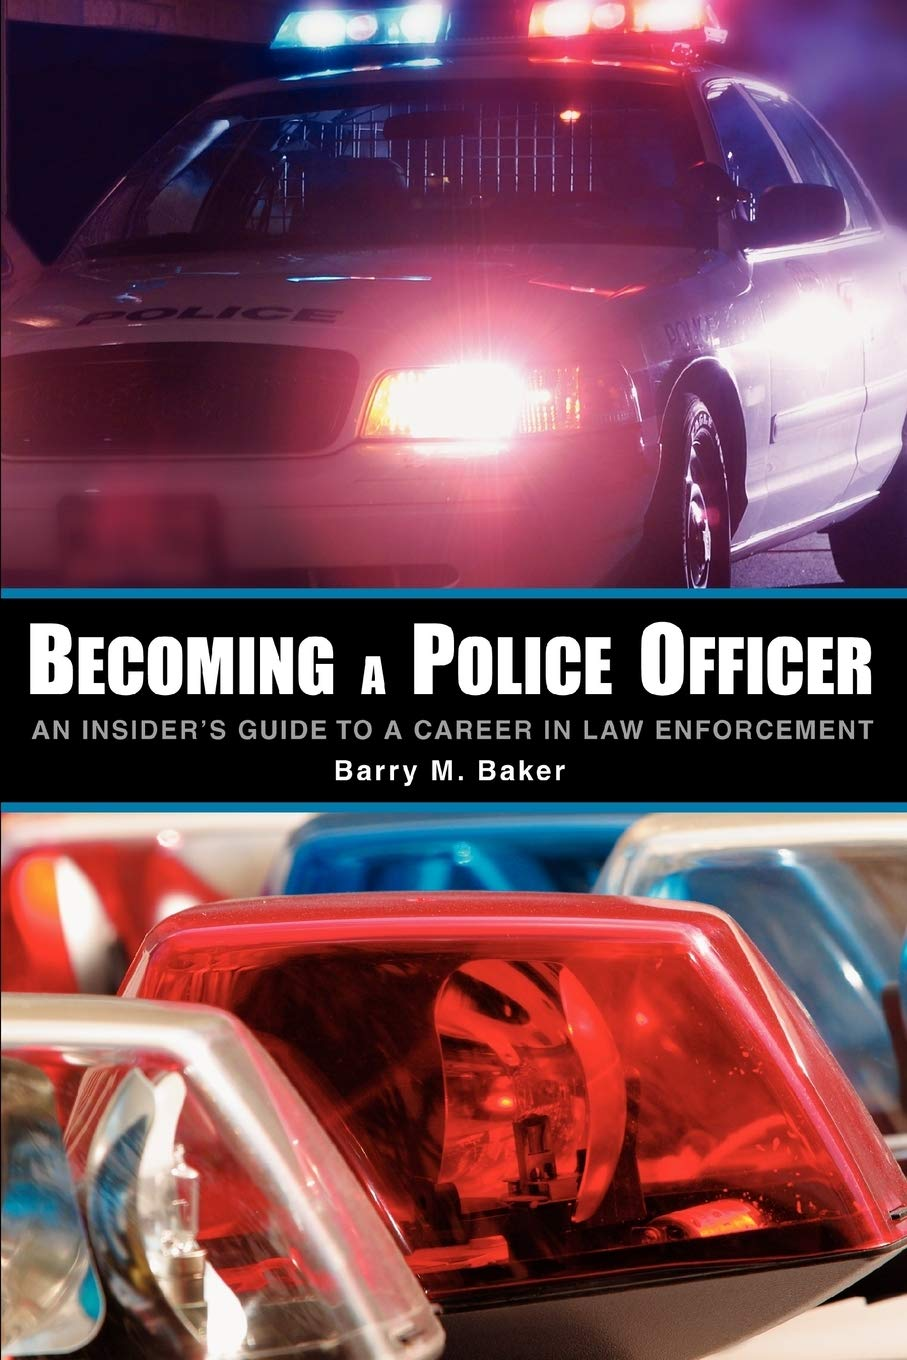 """Book Cover of """"Becoming a Police Officer: An Insider's Guide to a Career in Law Enforcement"""" by Barry M. Baker"""